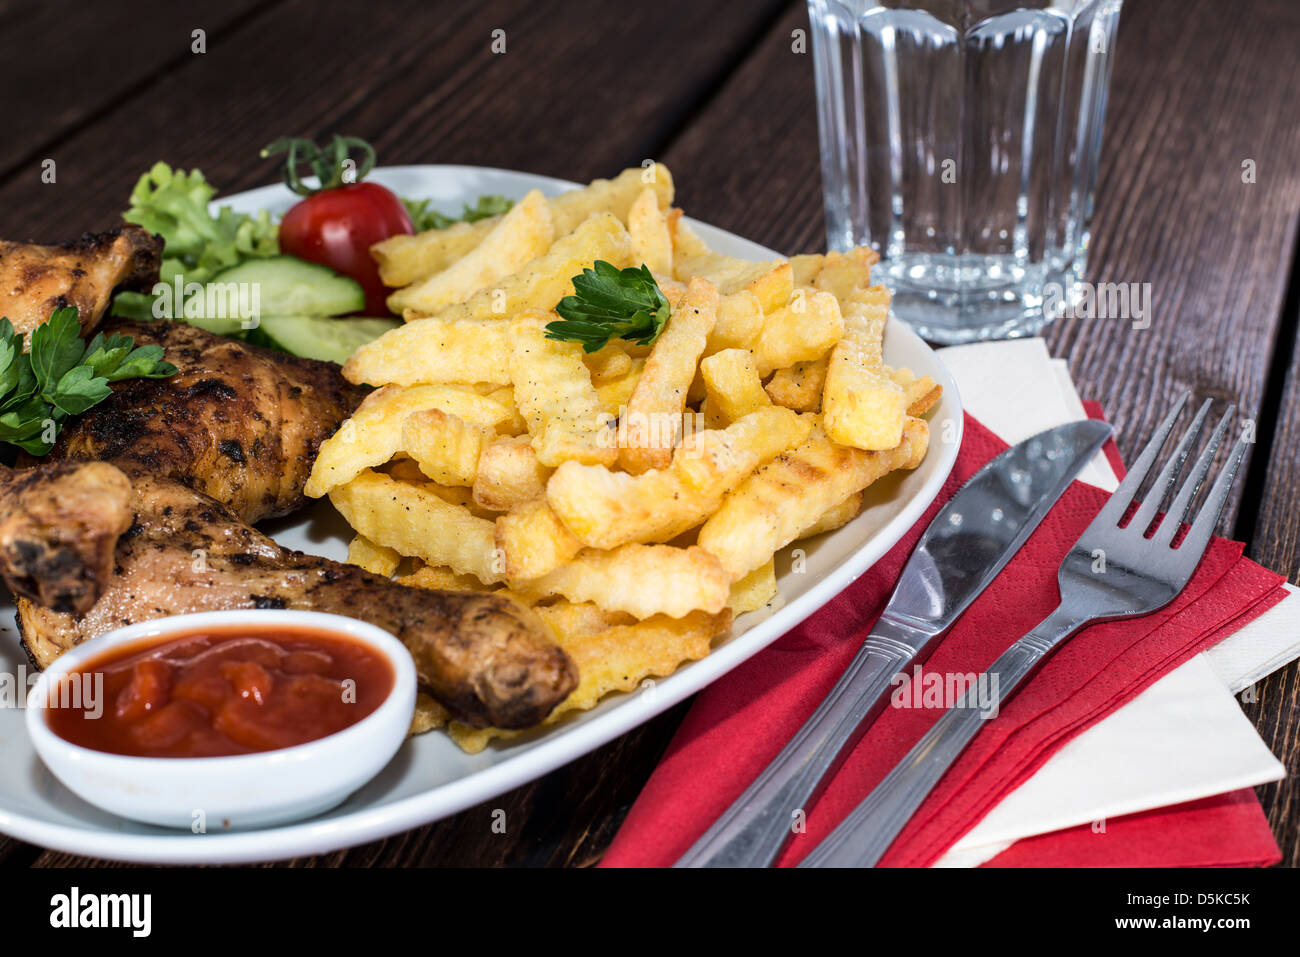 Portion of grilled Chicken Legs with Chips - Stock Image